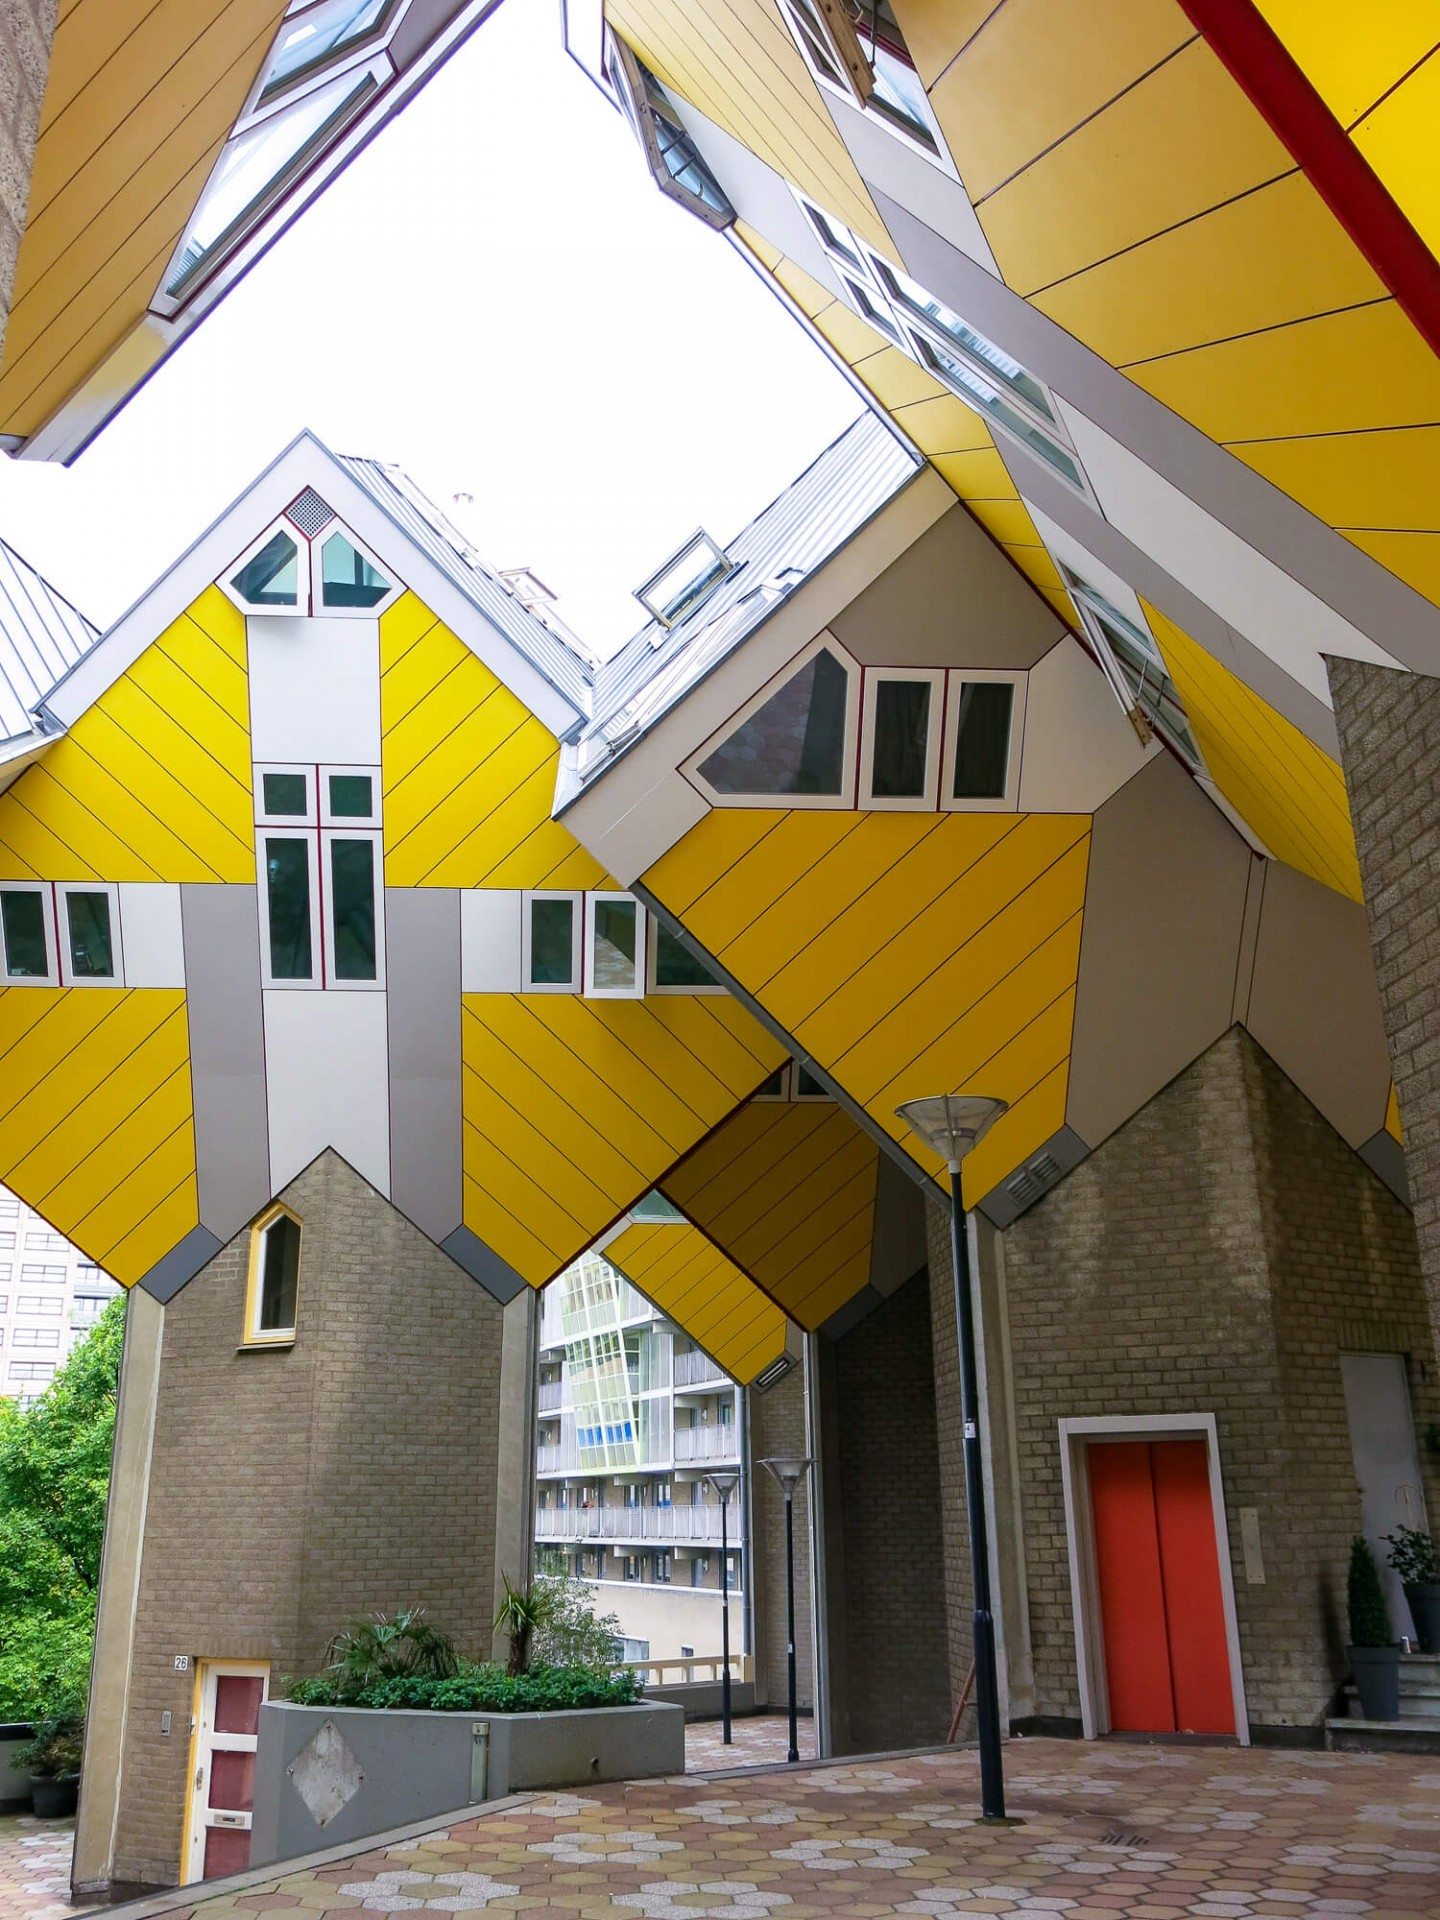 The Cube houses are a set of houses built in Rotterdam designed by architect Piet Blom. One of the reasons we loved Rotterdam as a city break!